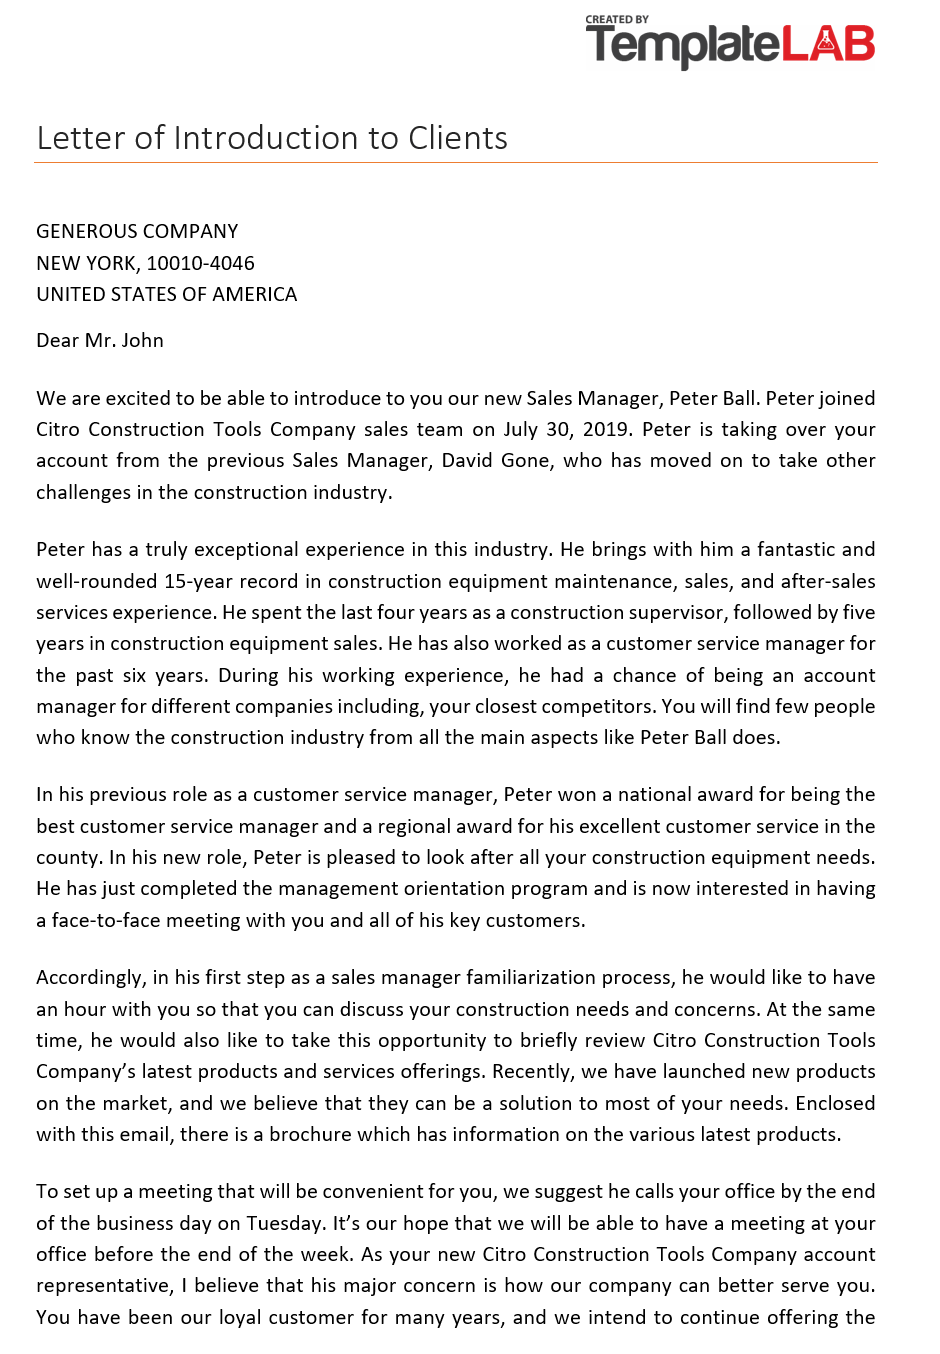 Free Letter of Introduction to Clients 2